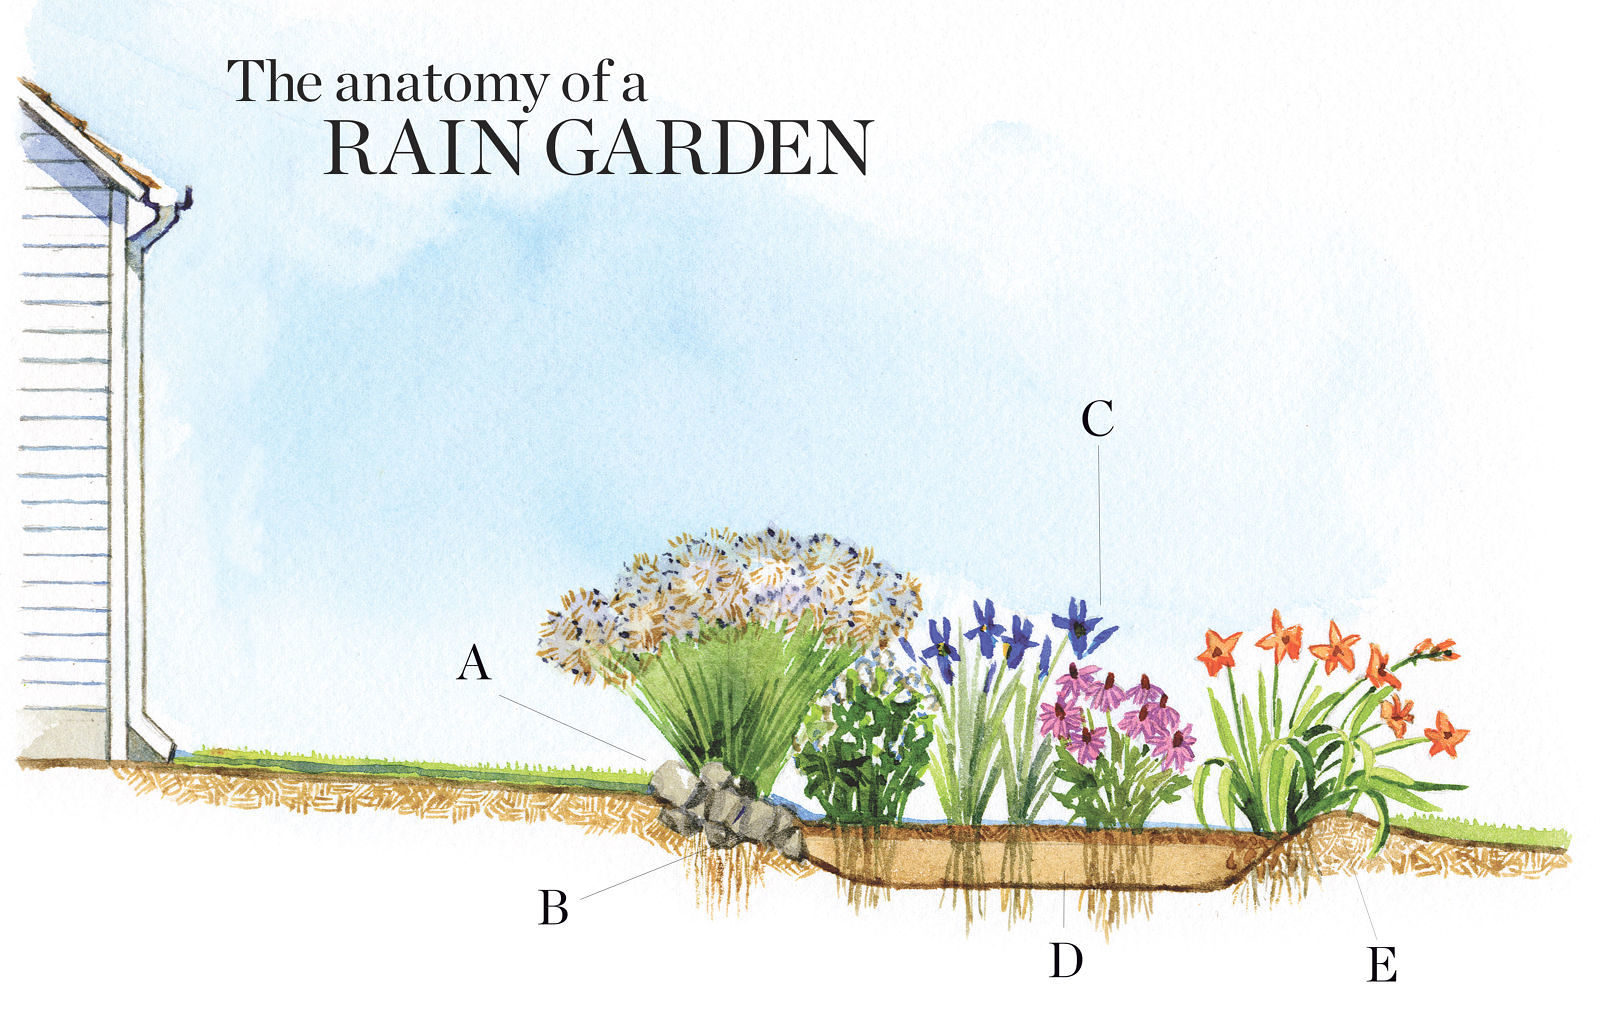 How to Design a Rain Garden - FineGardening Rain Garden Drawing Design Ideas on raised bed gardening design ideas, rain water garden ideas, greenhouse design ideas, landscape design ideas, rain garden construction, rain barrel design ideas, rain garden plans, downtown design ideas, rain garden installation, rain garden architecture, rain garden design diagrams, flower box design ideas, orchard design ideas, rain garden layout, rain gardening, permaculture design ideas, rain garden design templates, rain garden plants, rain garden design software, root cellar design ideas,